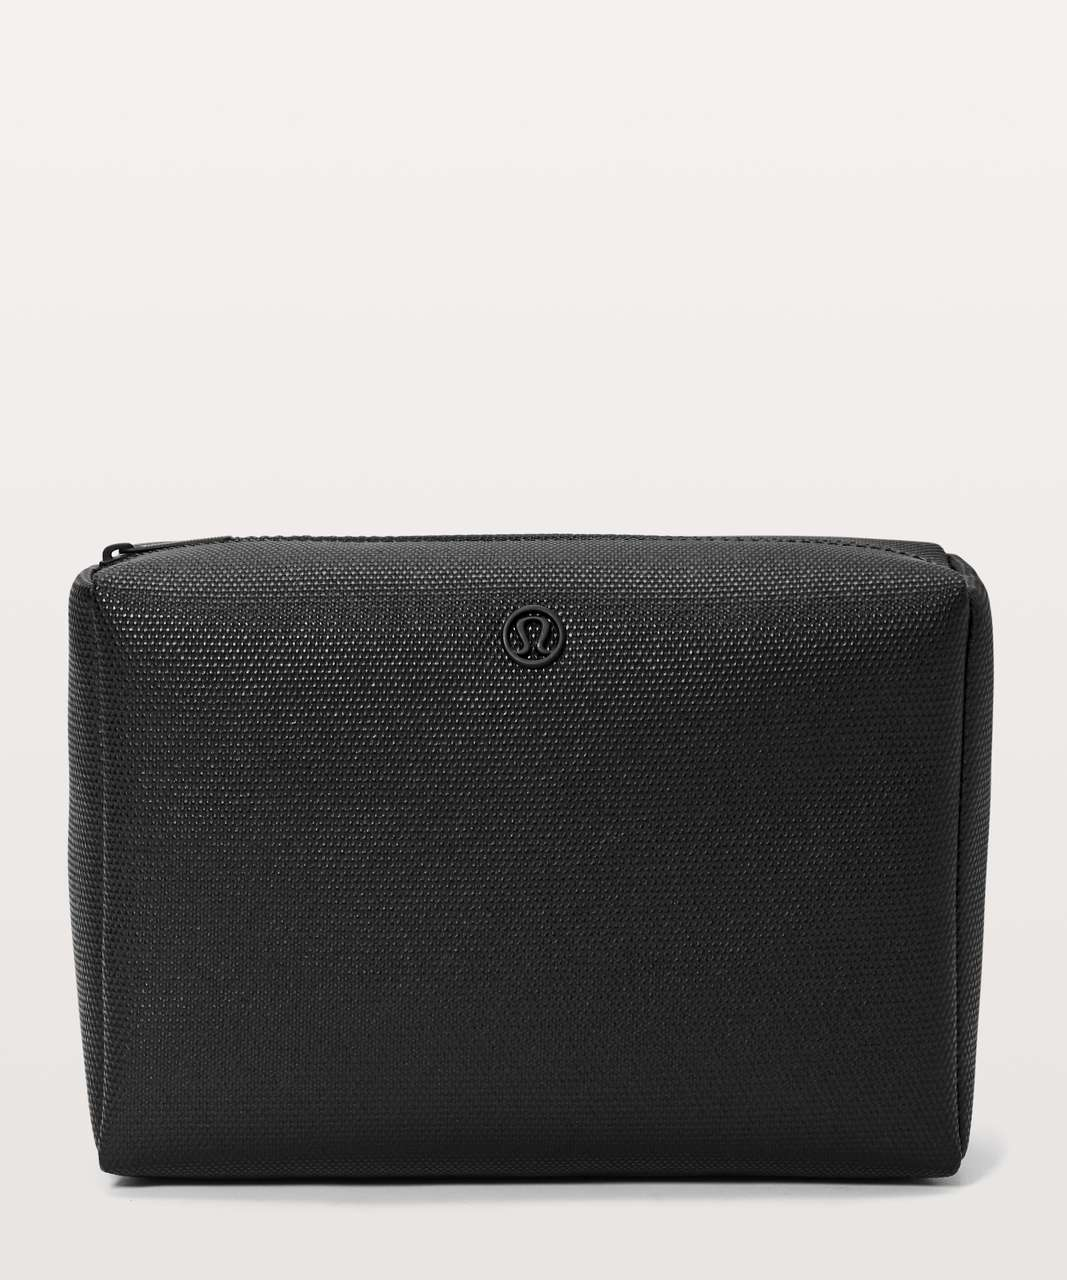 Lululemon All Your Small Things Pouch *Canvas 4L - Black